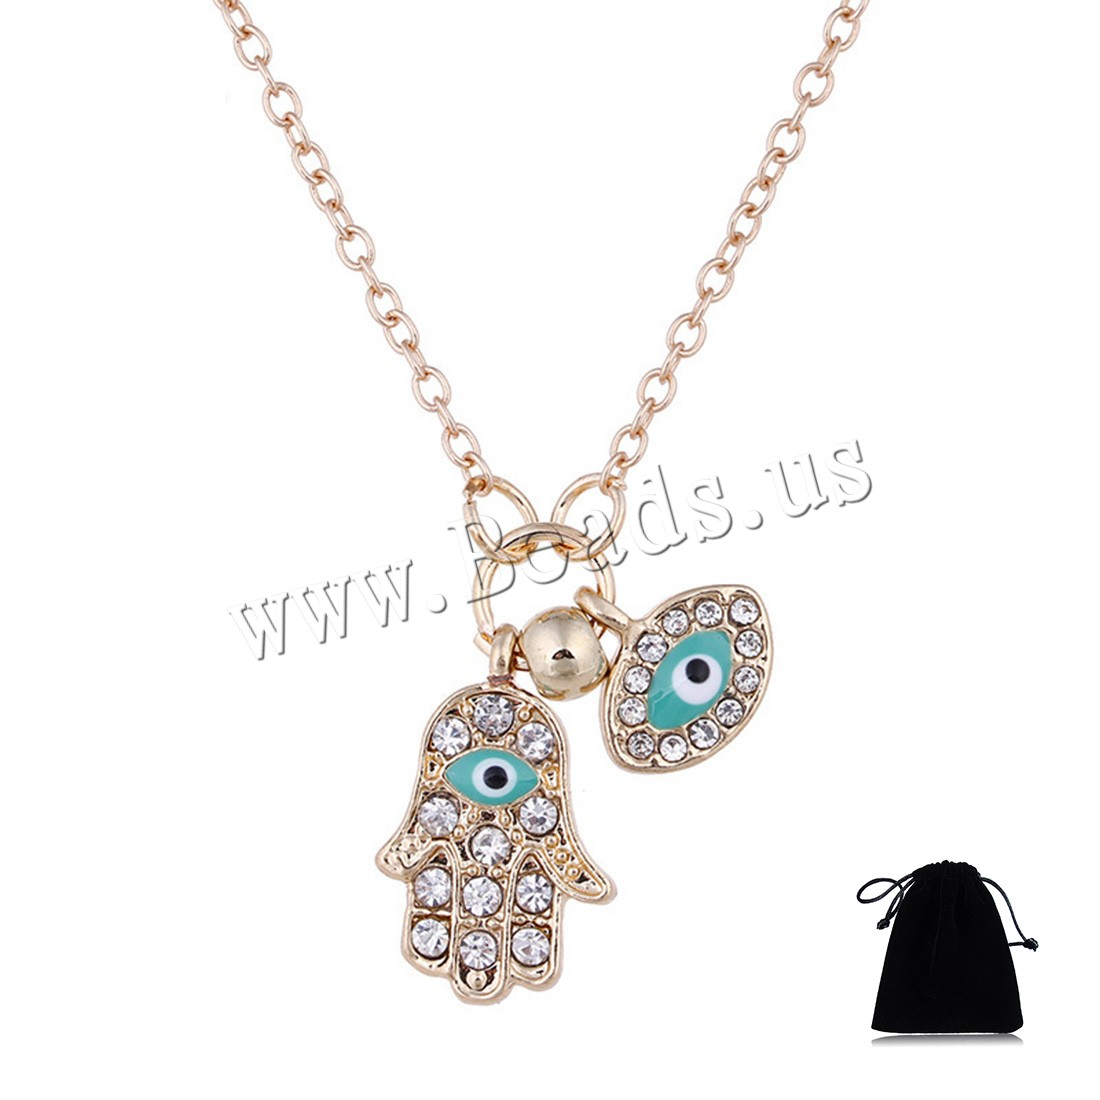 Buy Evil Eye Jewelry Necklace Zinc Alloy 1.96inch extender chain Hamsa plated evil eye pattern & oval chain & woman & enamel & rhinestone colors choice nickel lead & cadmium free 12x17mm Sold Per Approx 18.5 Inch Strand